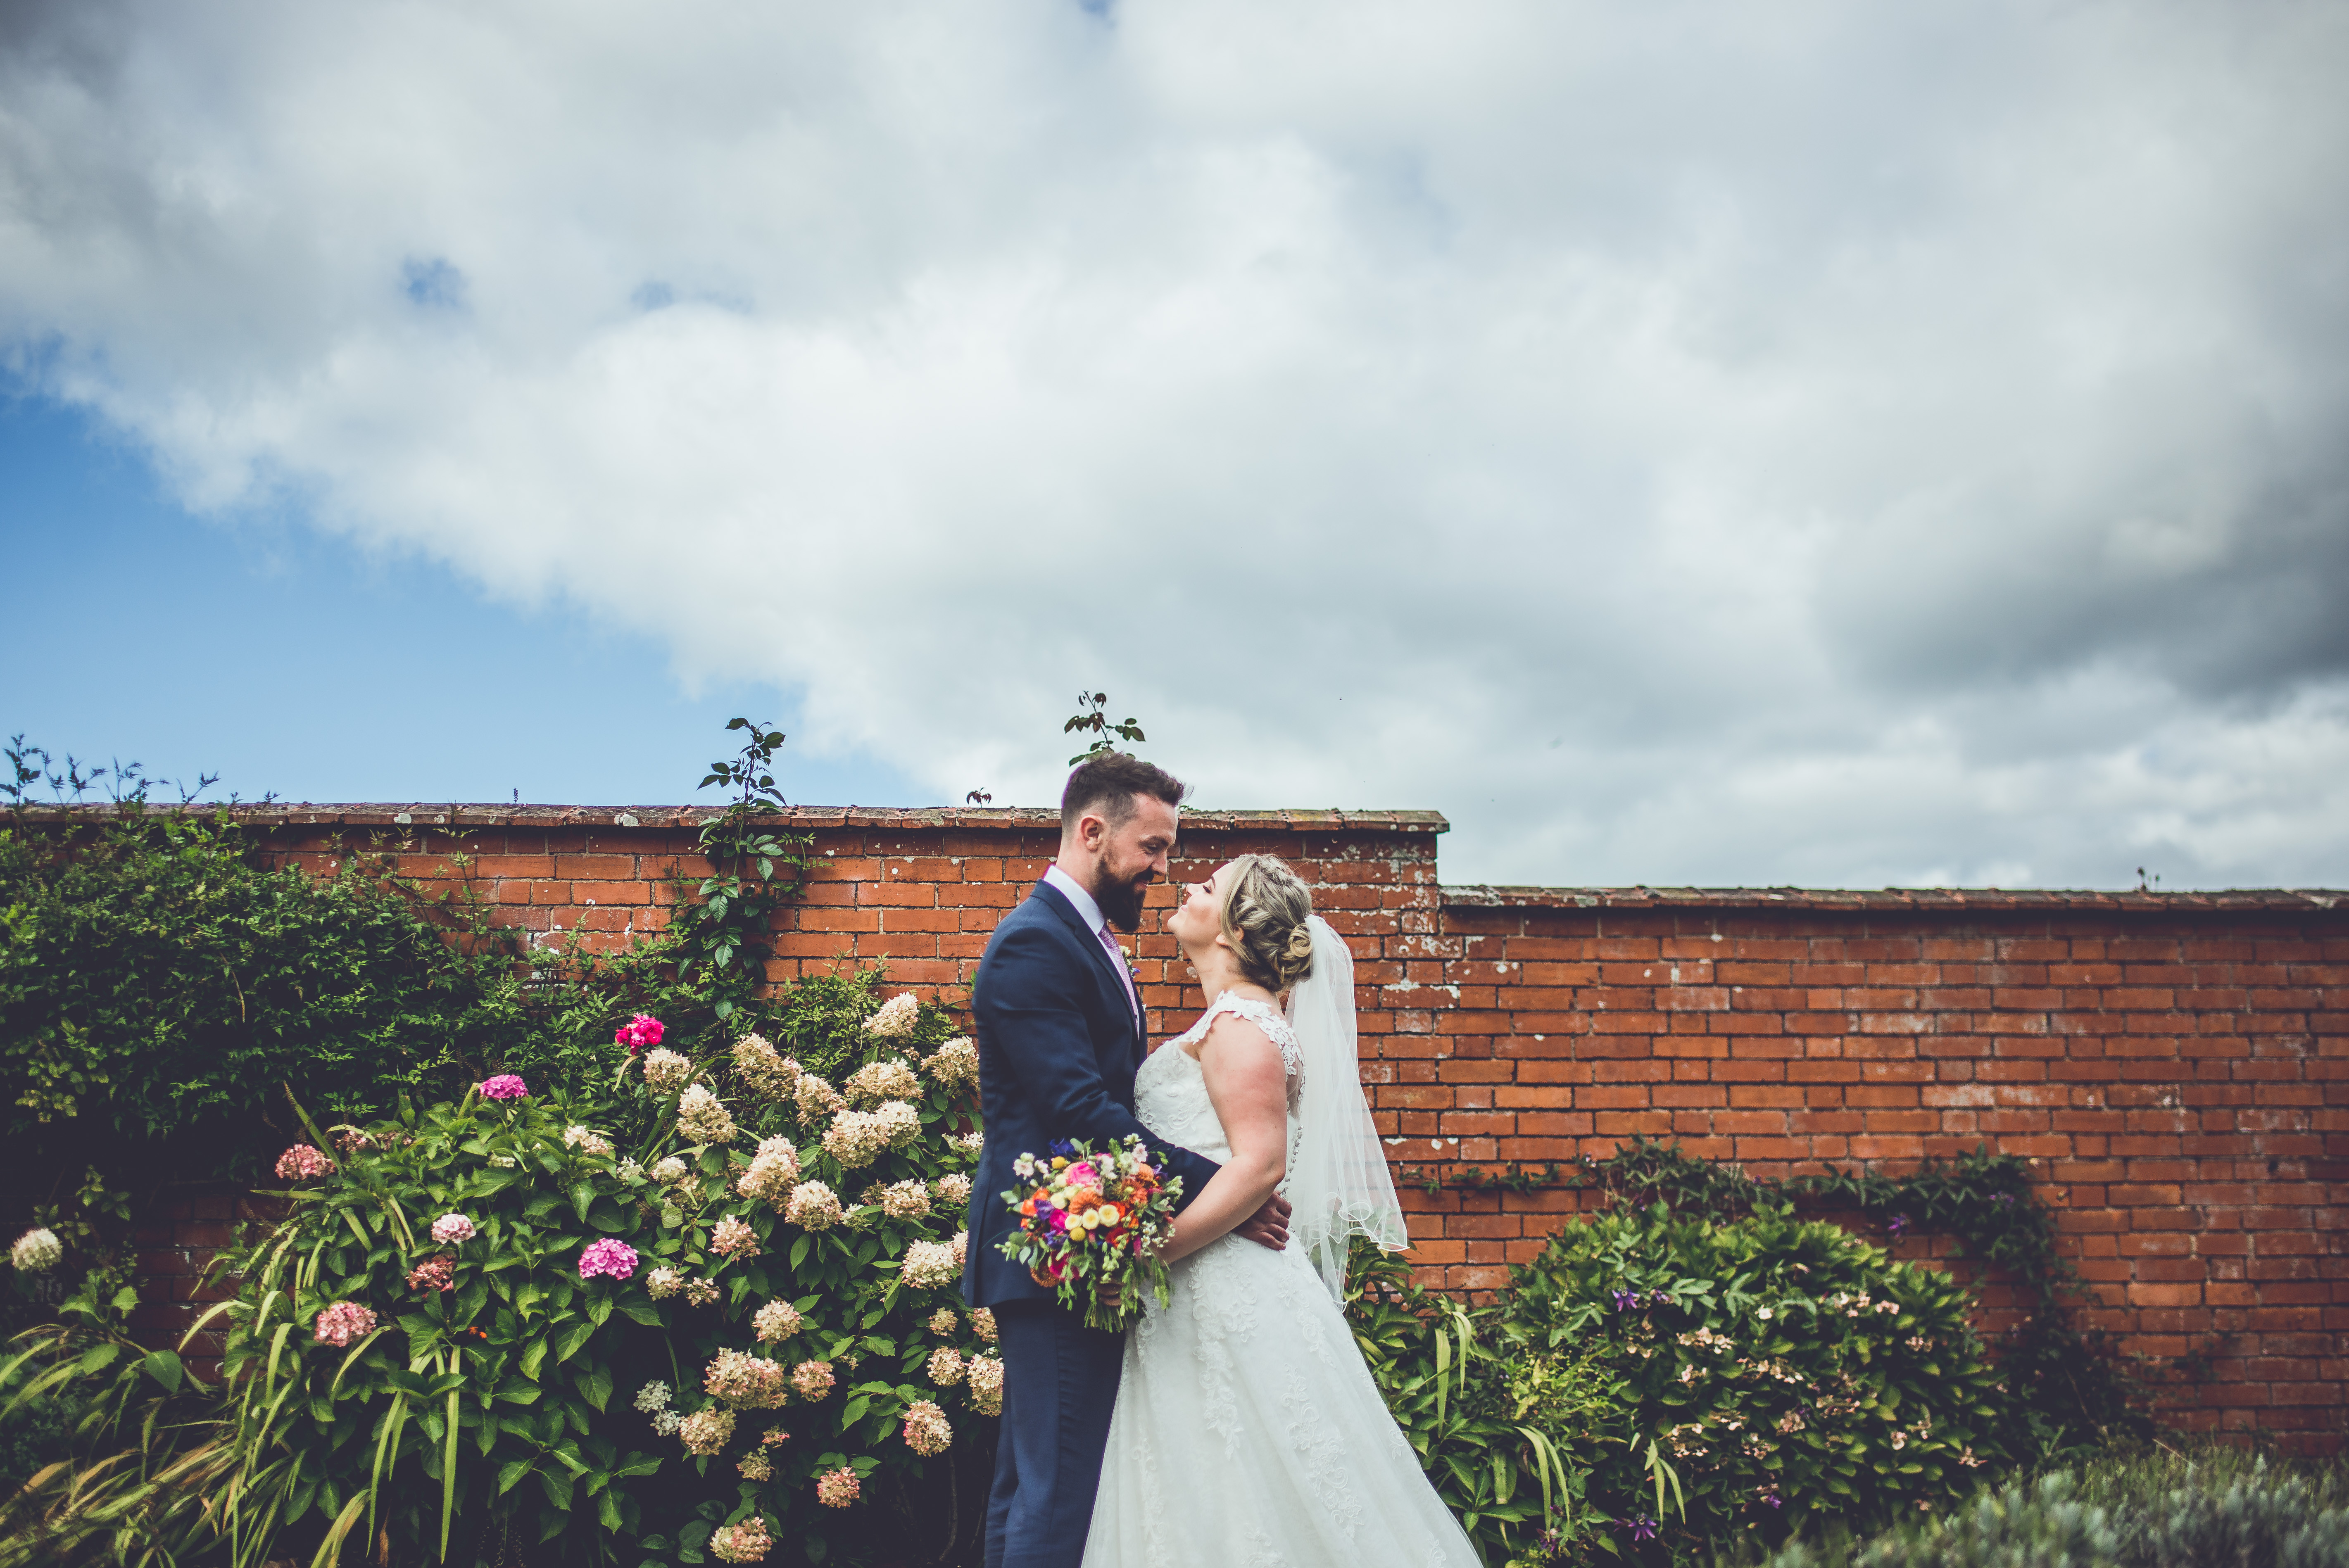 Bride and Groom look into each others eyesin an embrace by the Walled Garden at Upton Barn